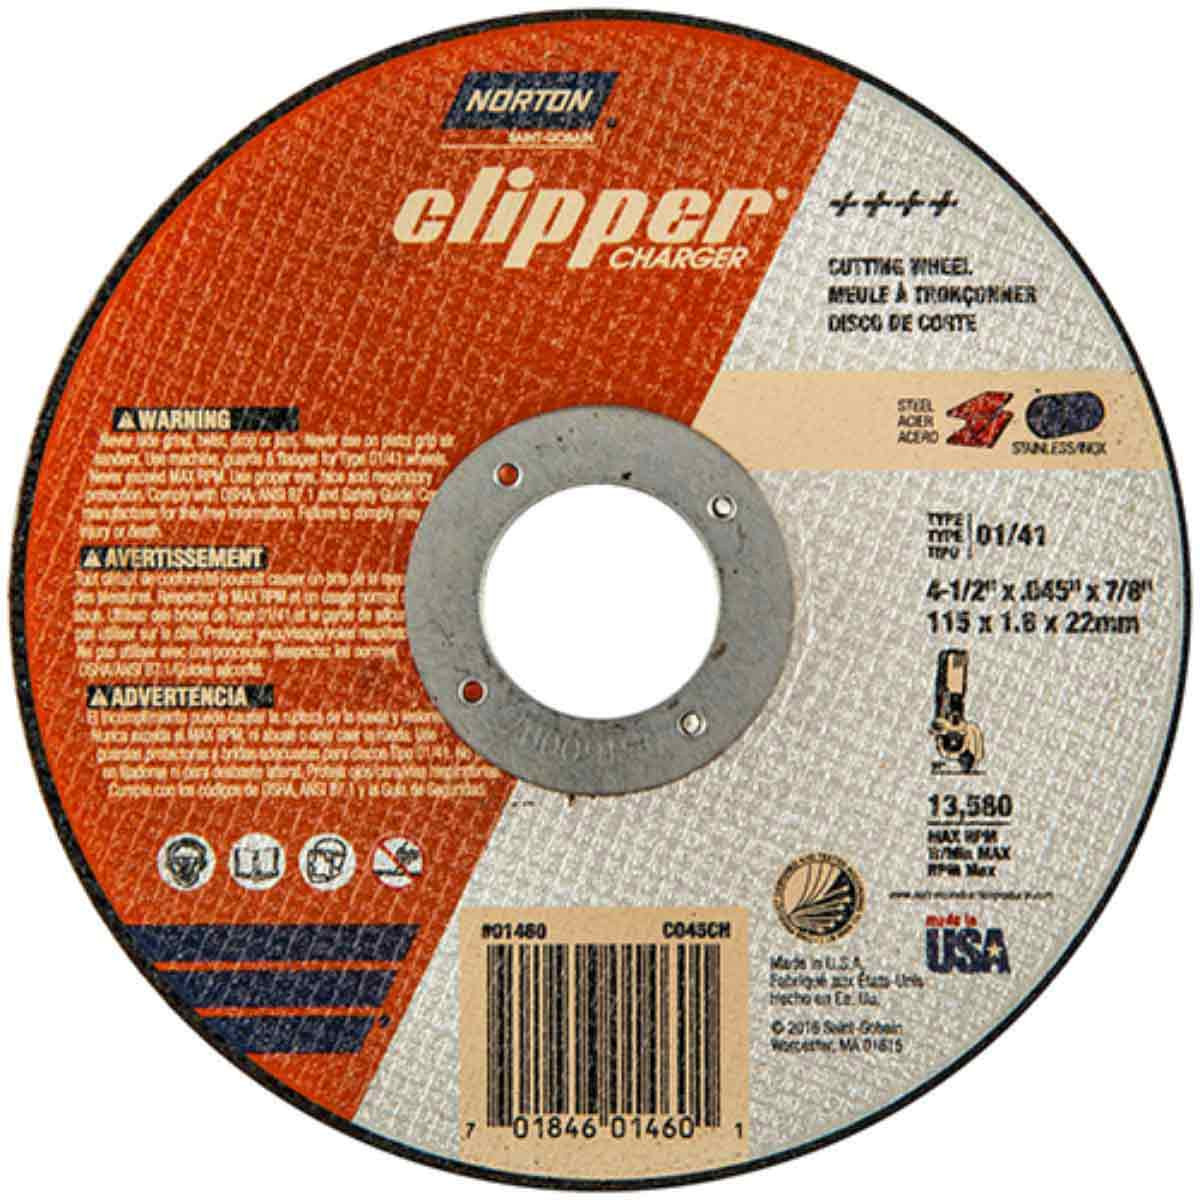 CO45CH Norton Abrasive Charger Cut-Off Wheels